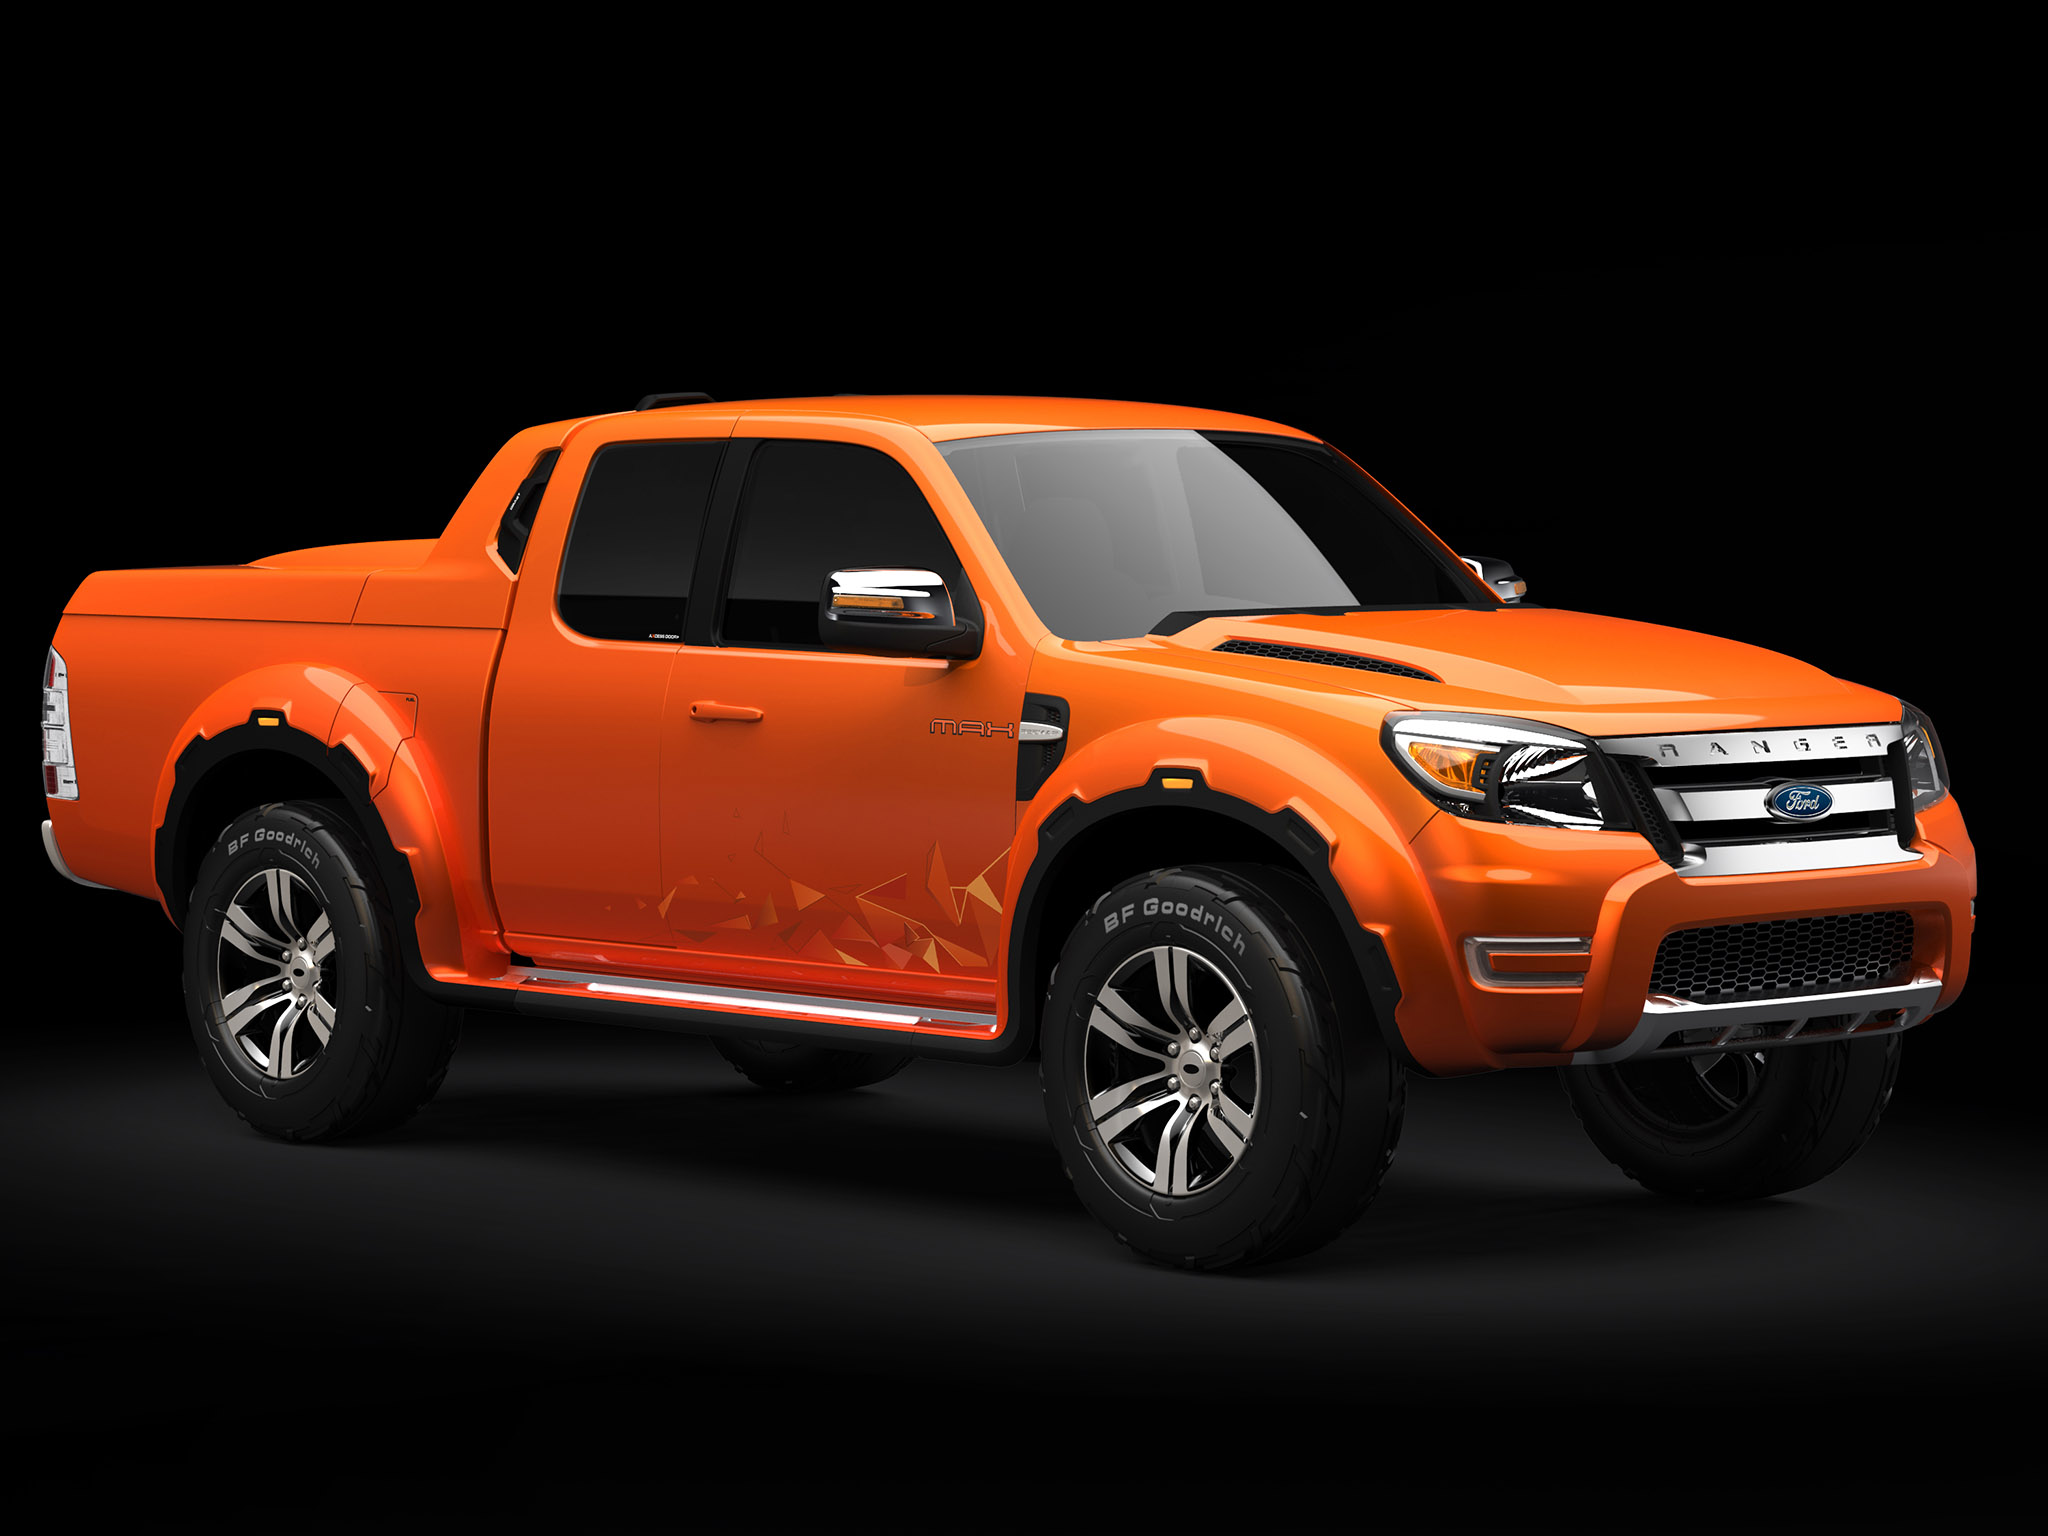 2008 Ford Ranger Max Concept truck 4x4 f wallpaper background 2048x1536